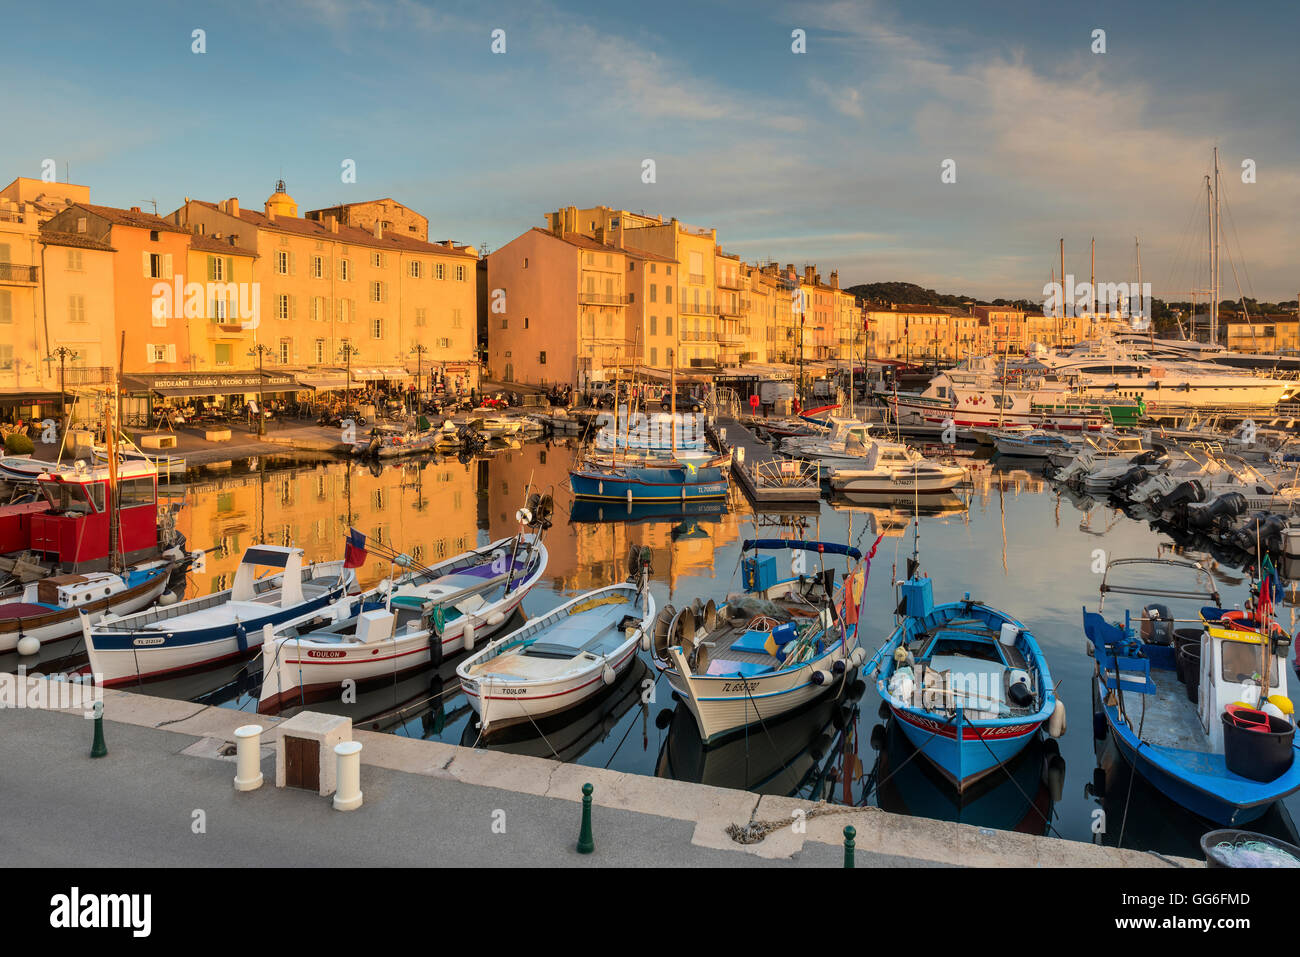 Warm evening sunlight illuminating the port of Saint Tropez, Var, Provence, Cote d'Azur, French Riviera, France, - Stock Image